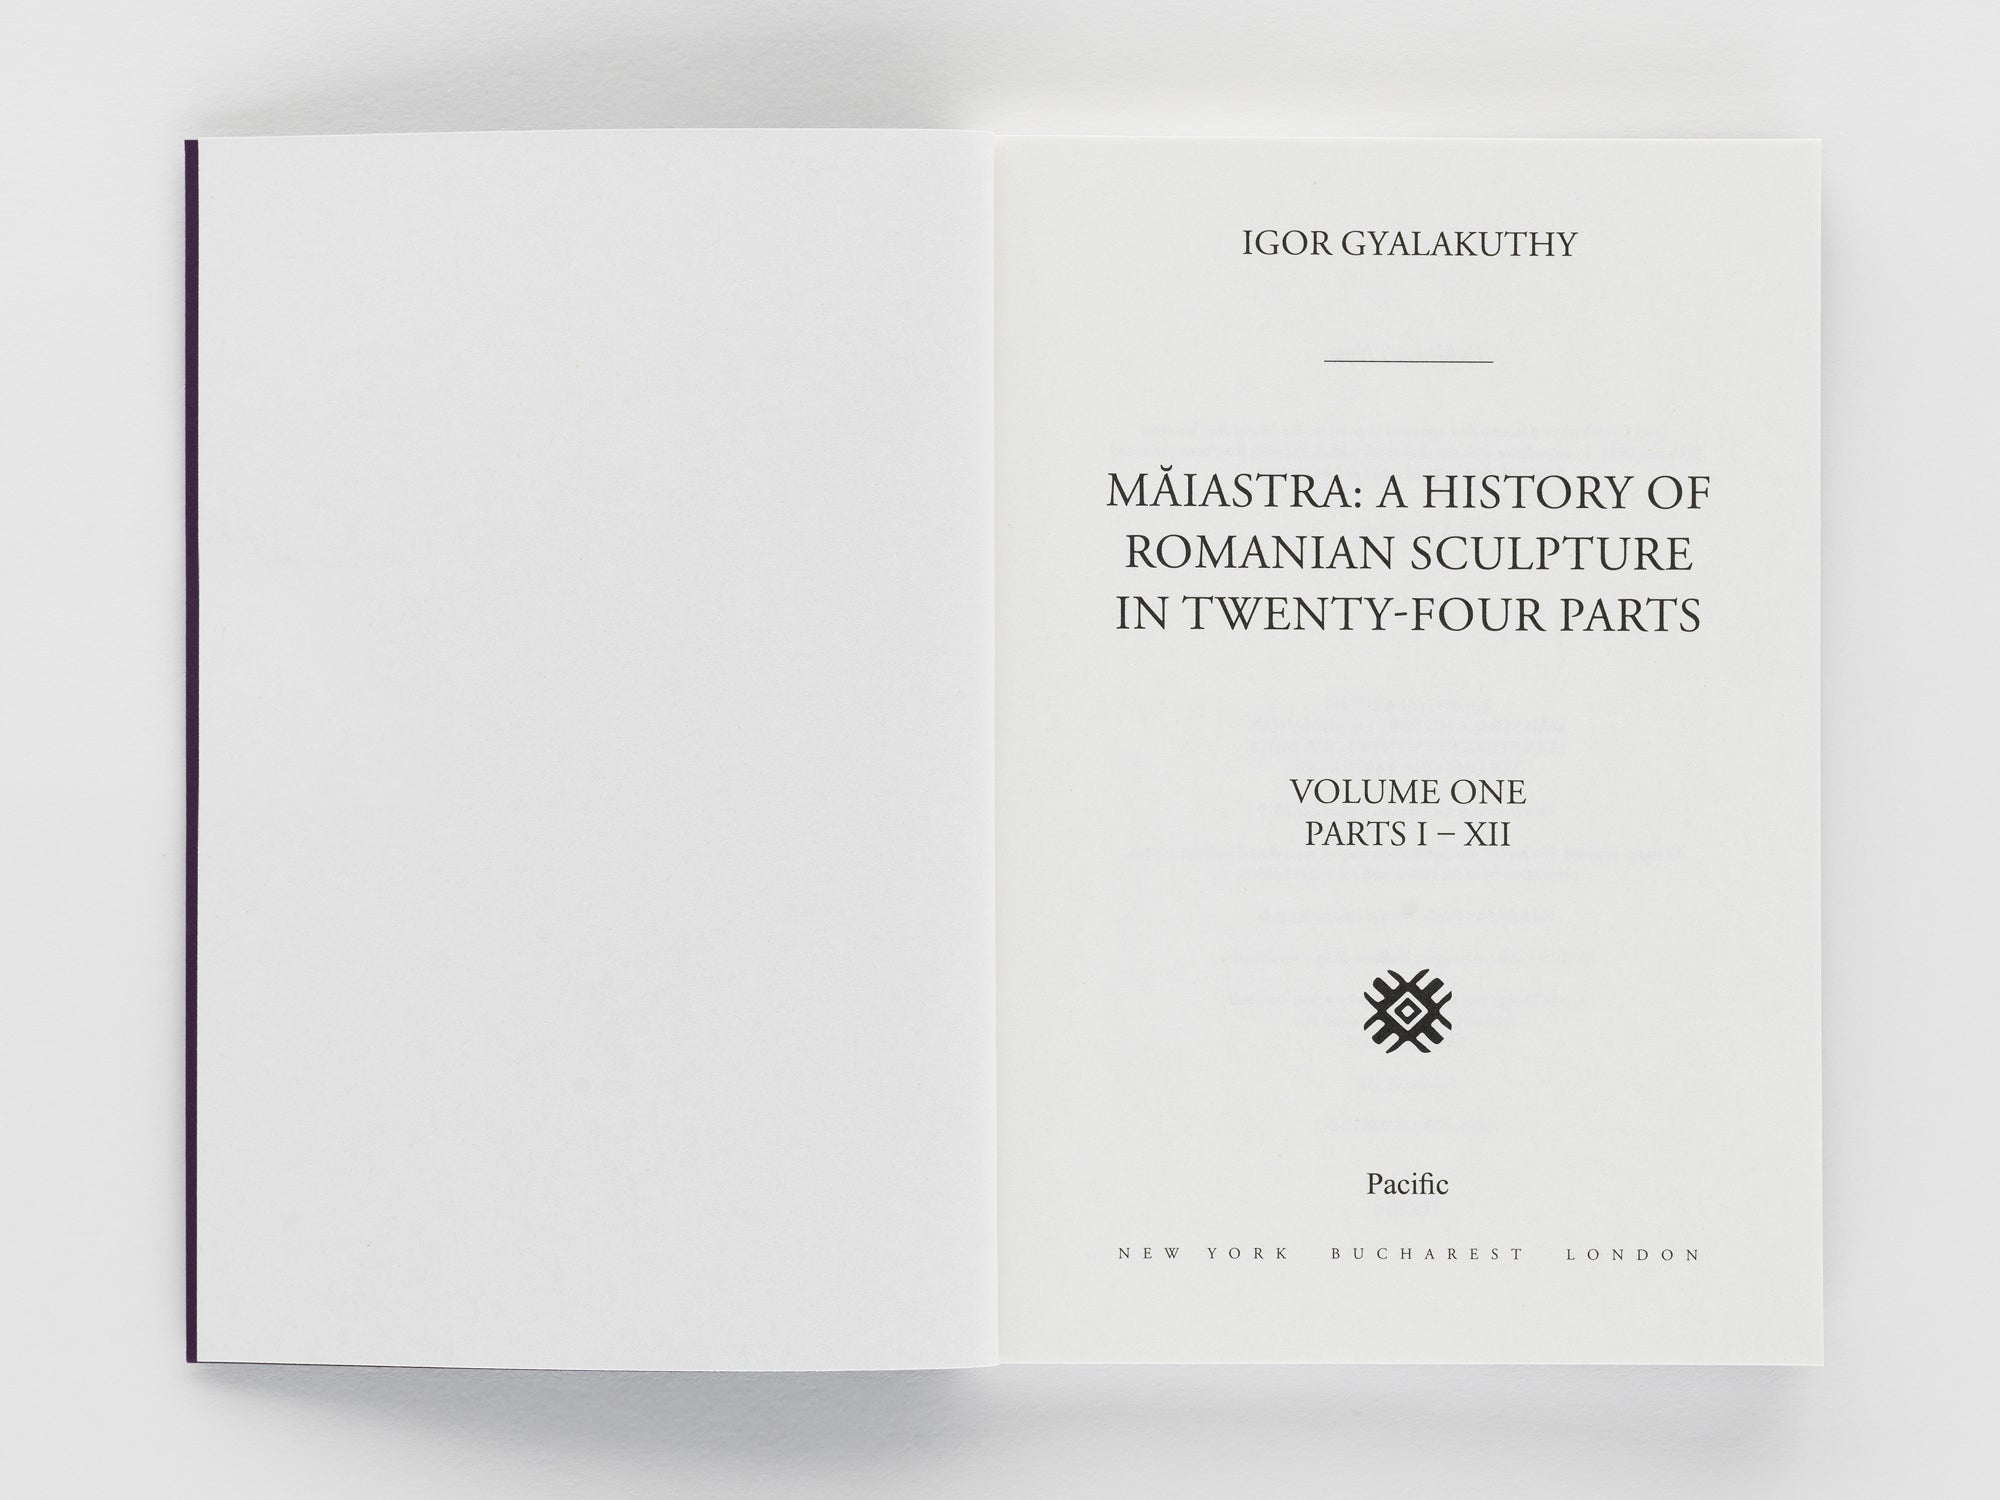 Maiastra: A History of Romanian  Sculpture in Twenty-Four Parts